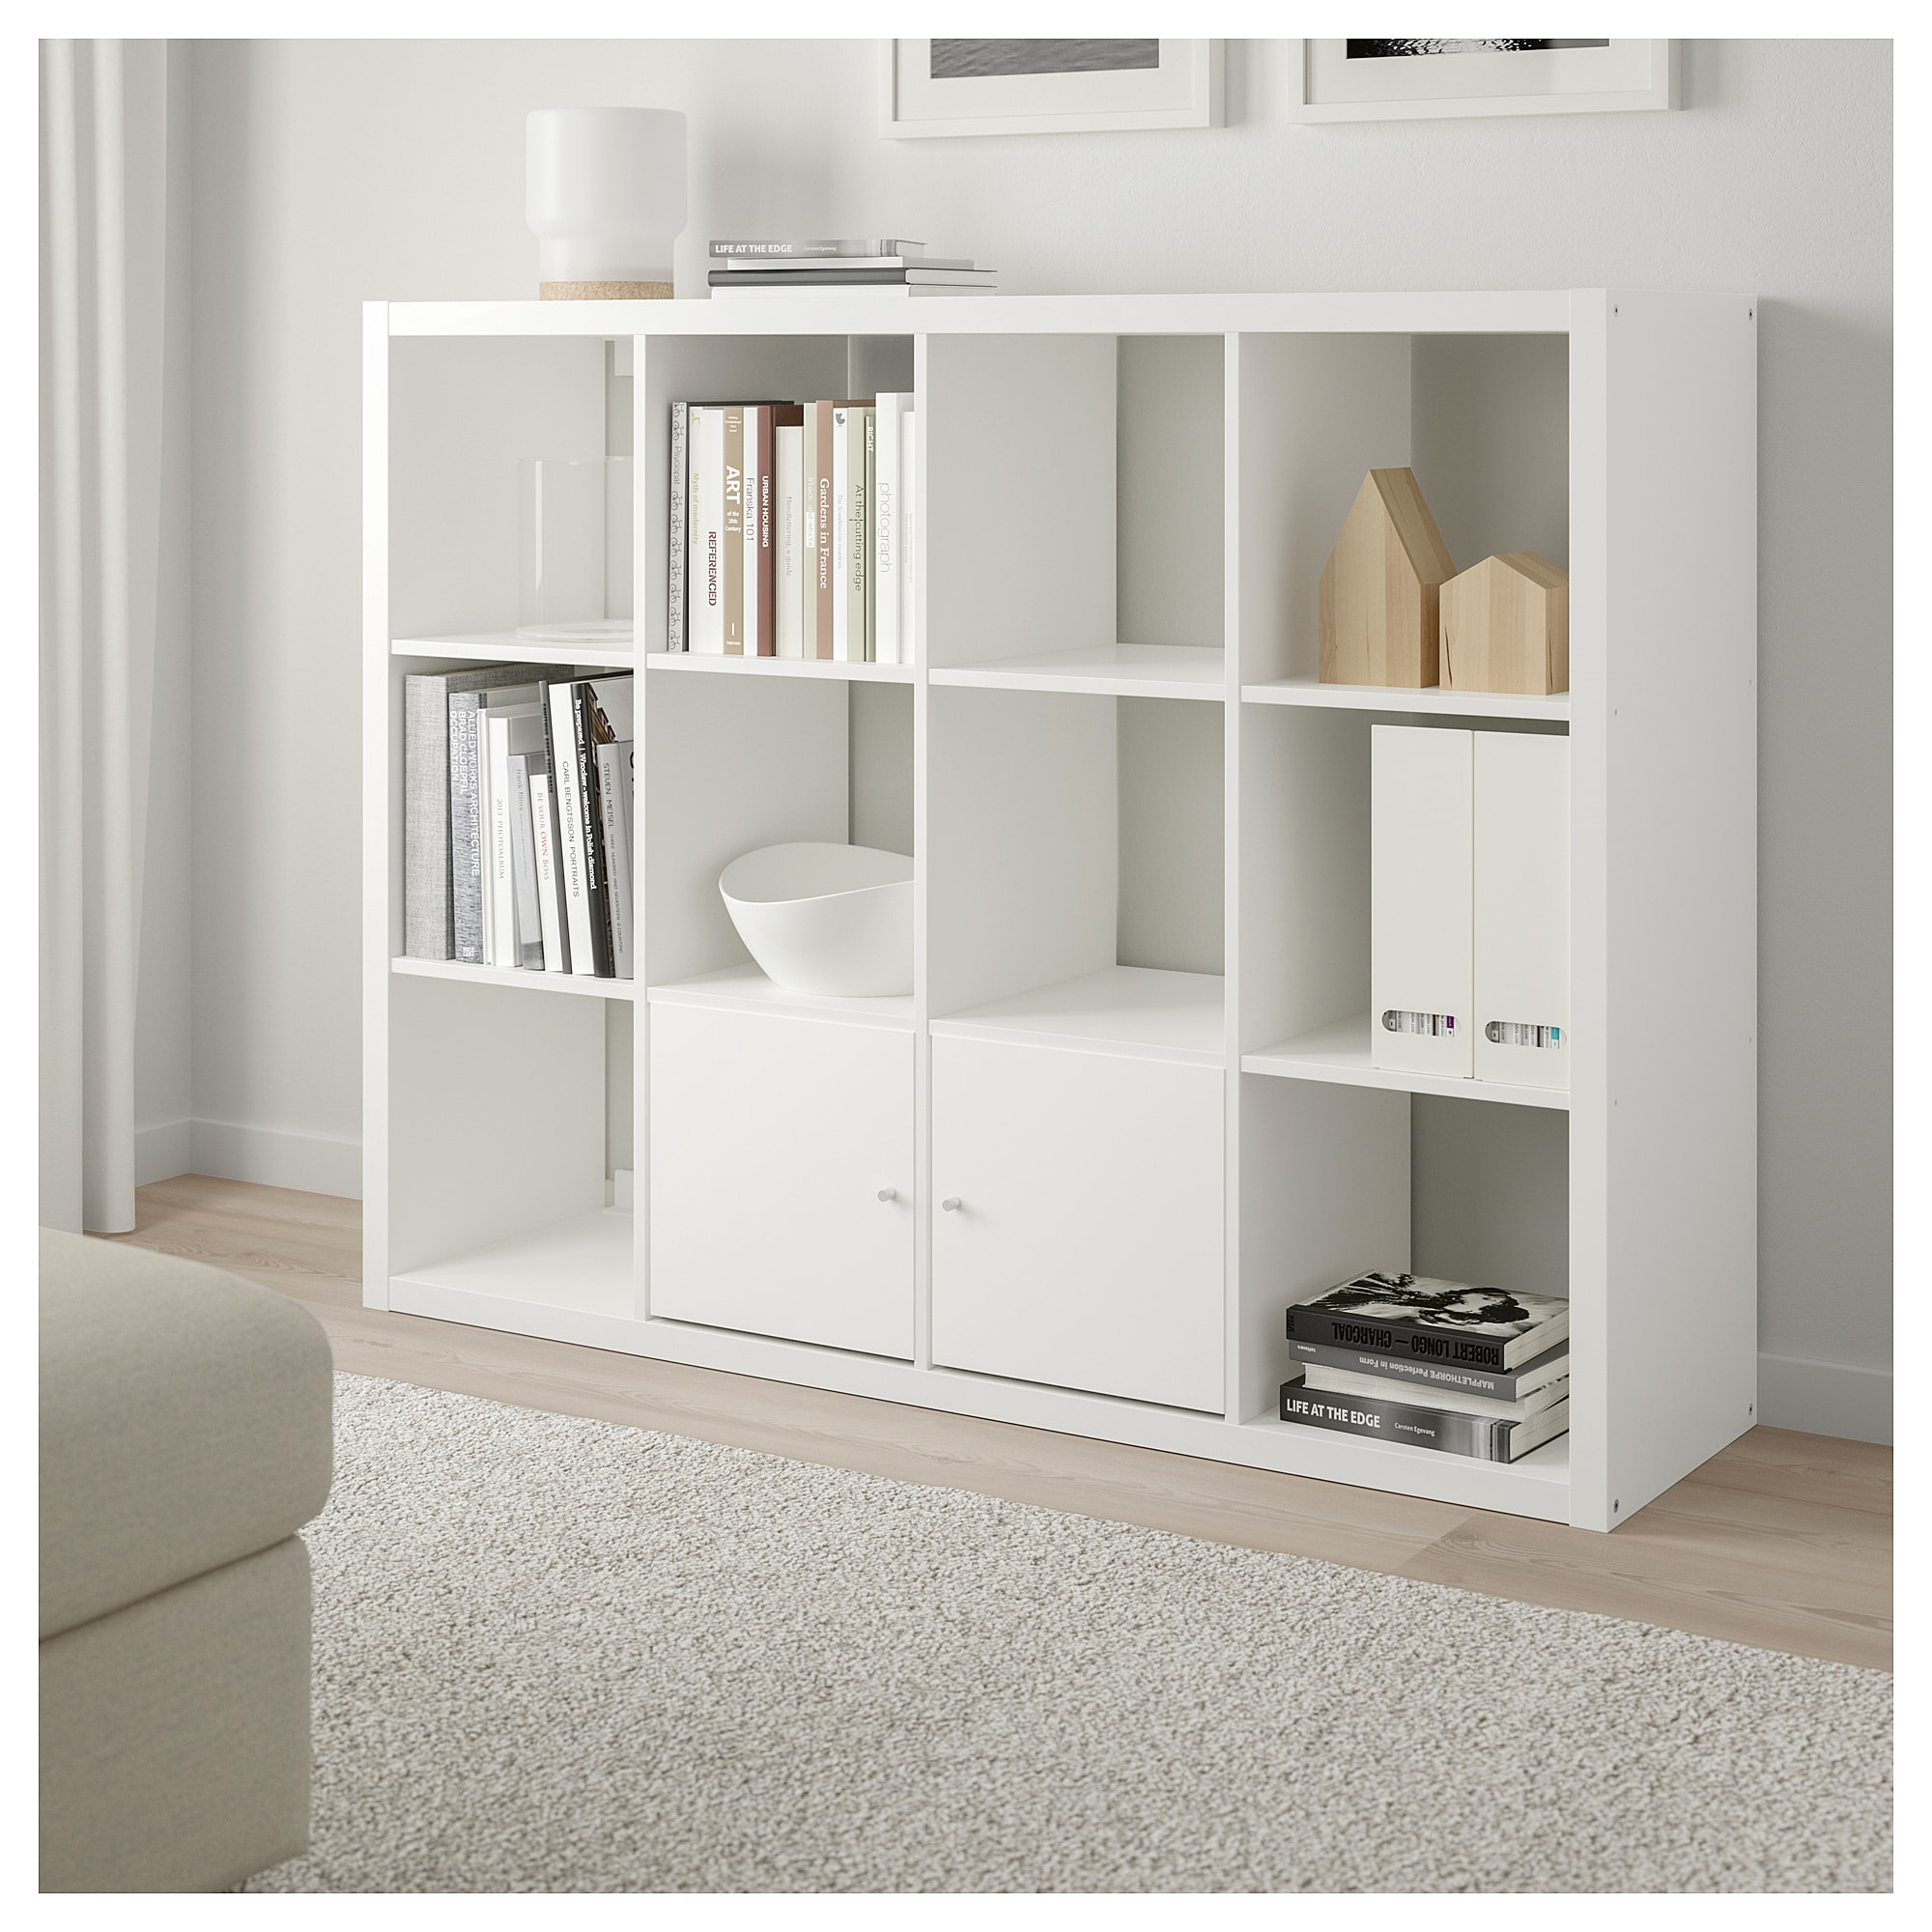 Ikea Cubes Ikea Kallax Shelf Unit White In 2019 Bedroom Furniture Ikea